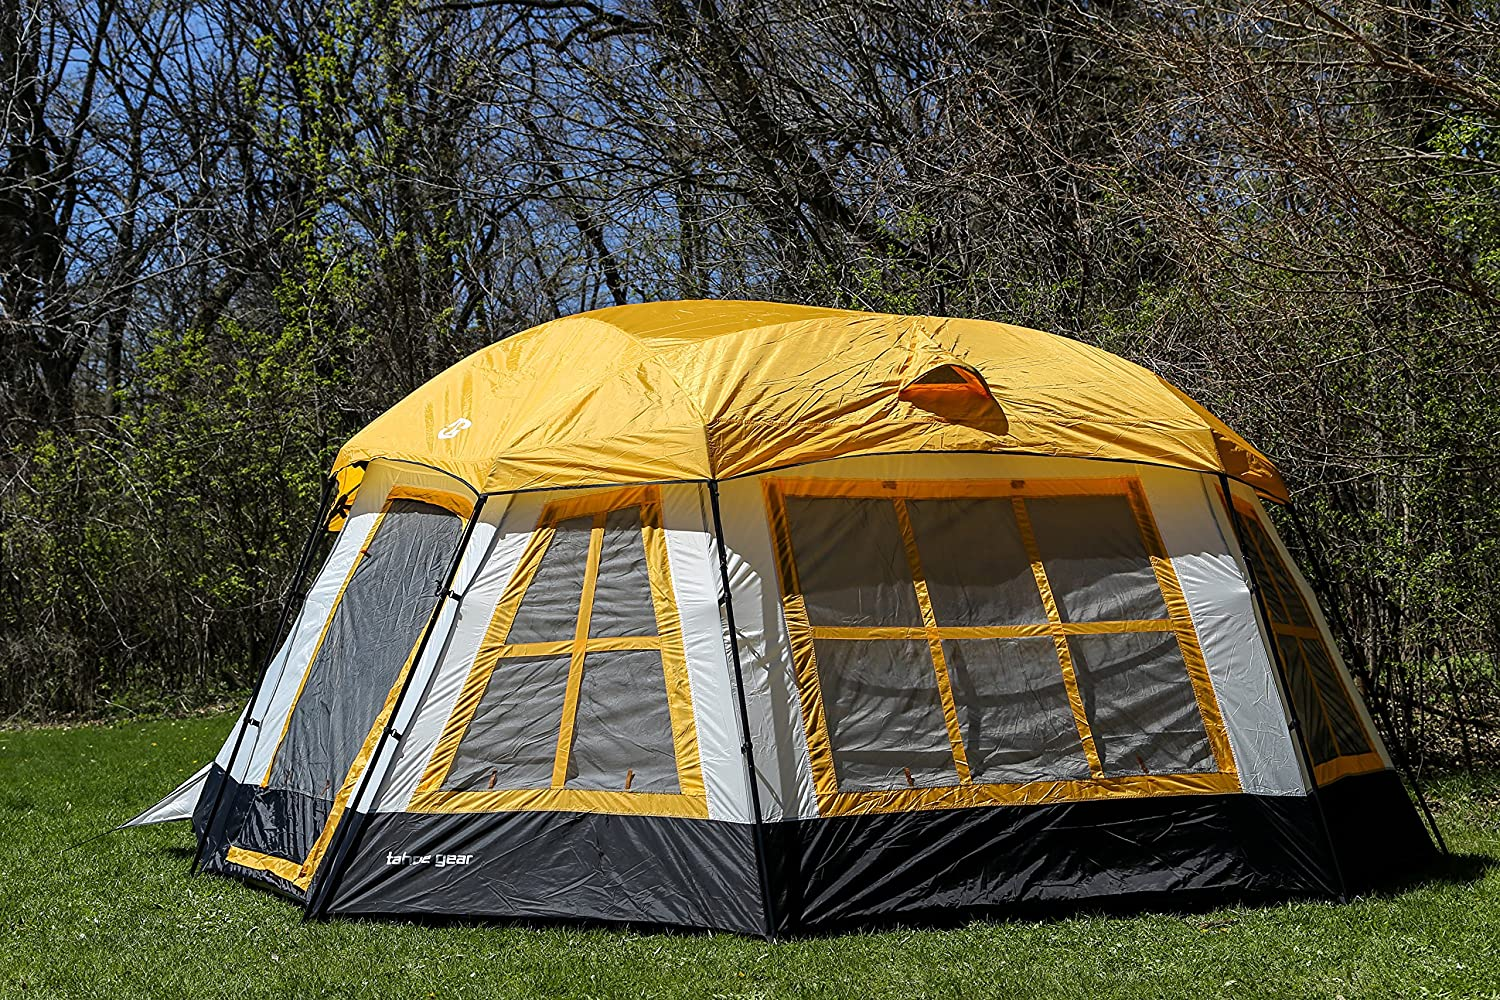 Tahoe Gear Ozark 3-Season 16 Person Large Family Cabin Tent - 16 person tent